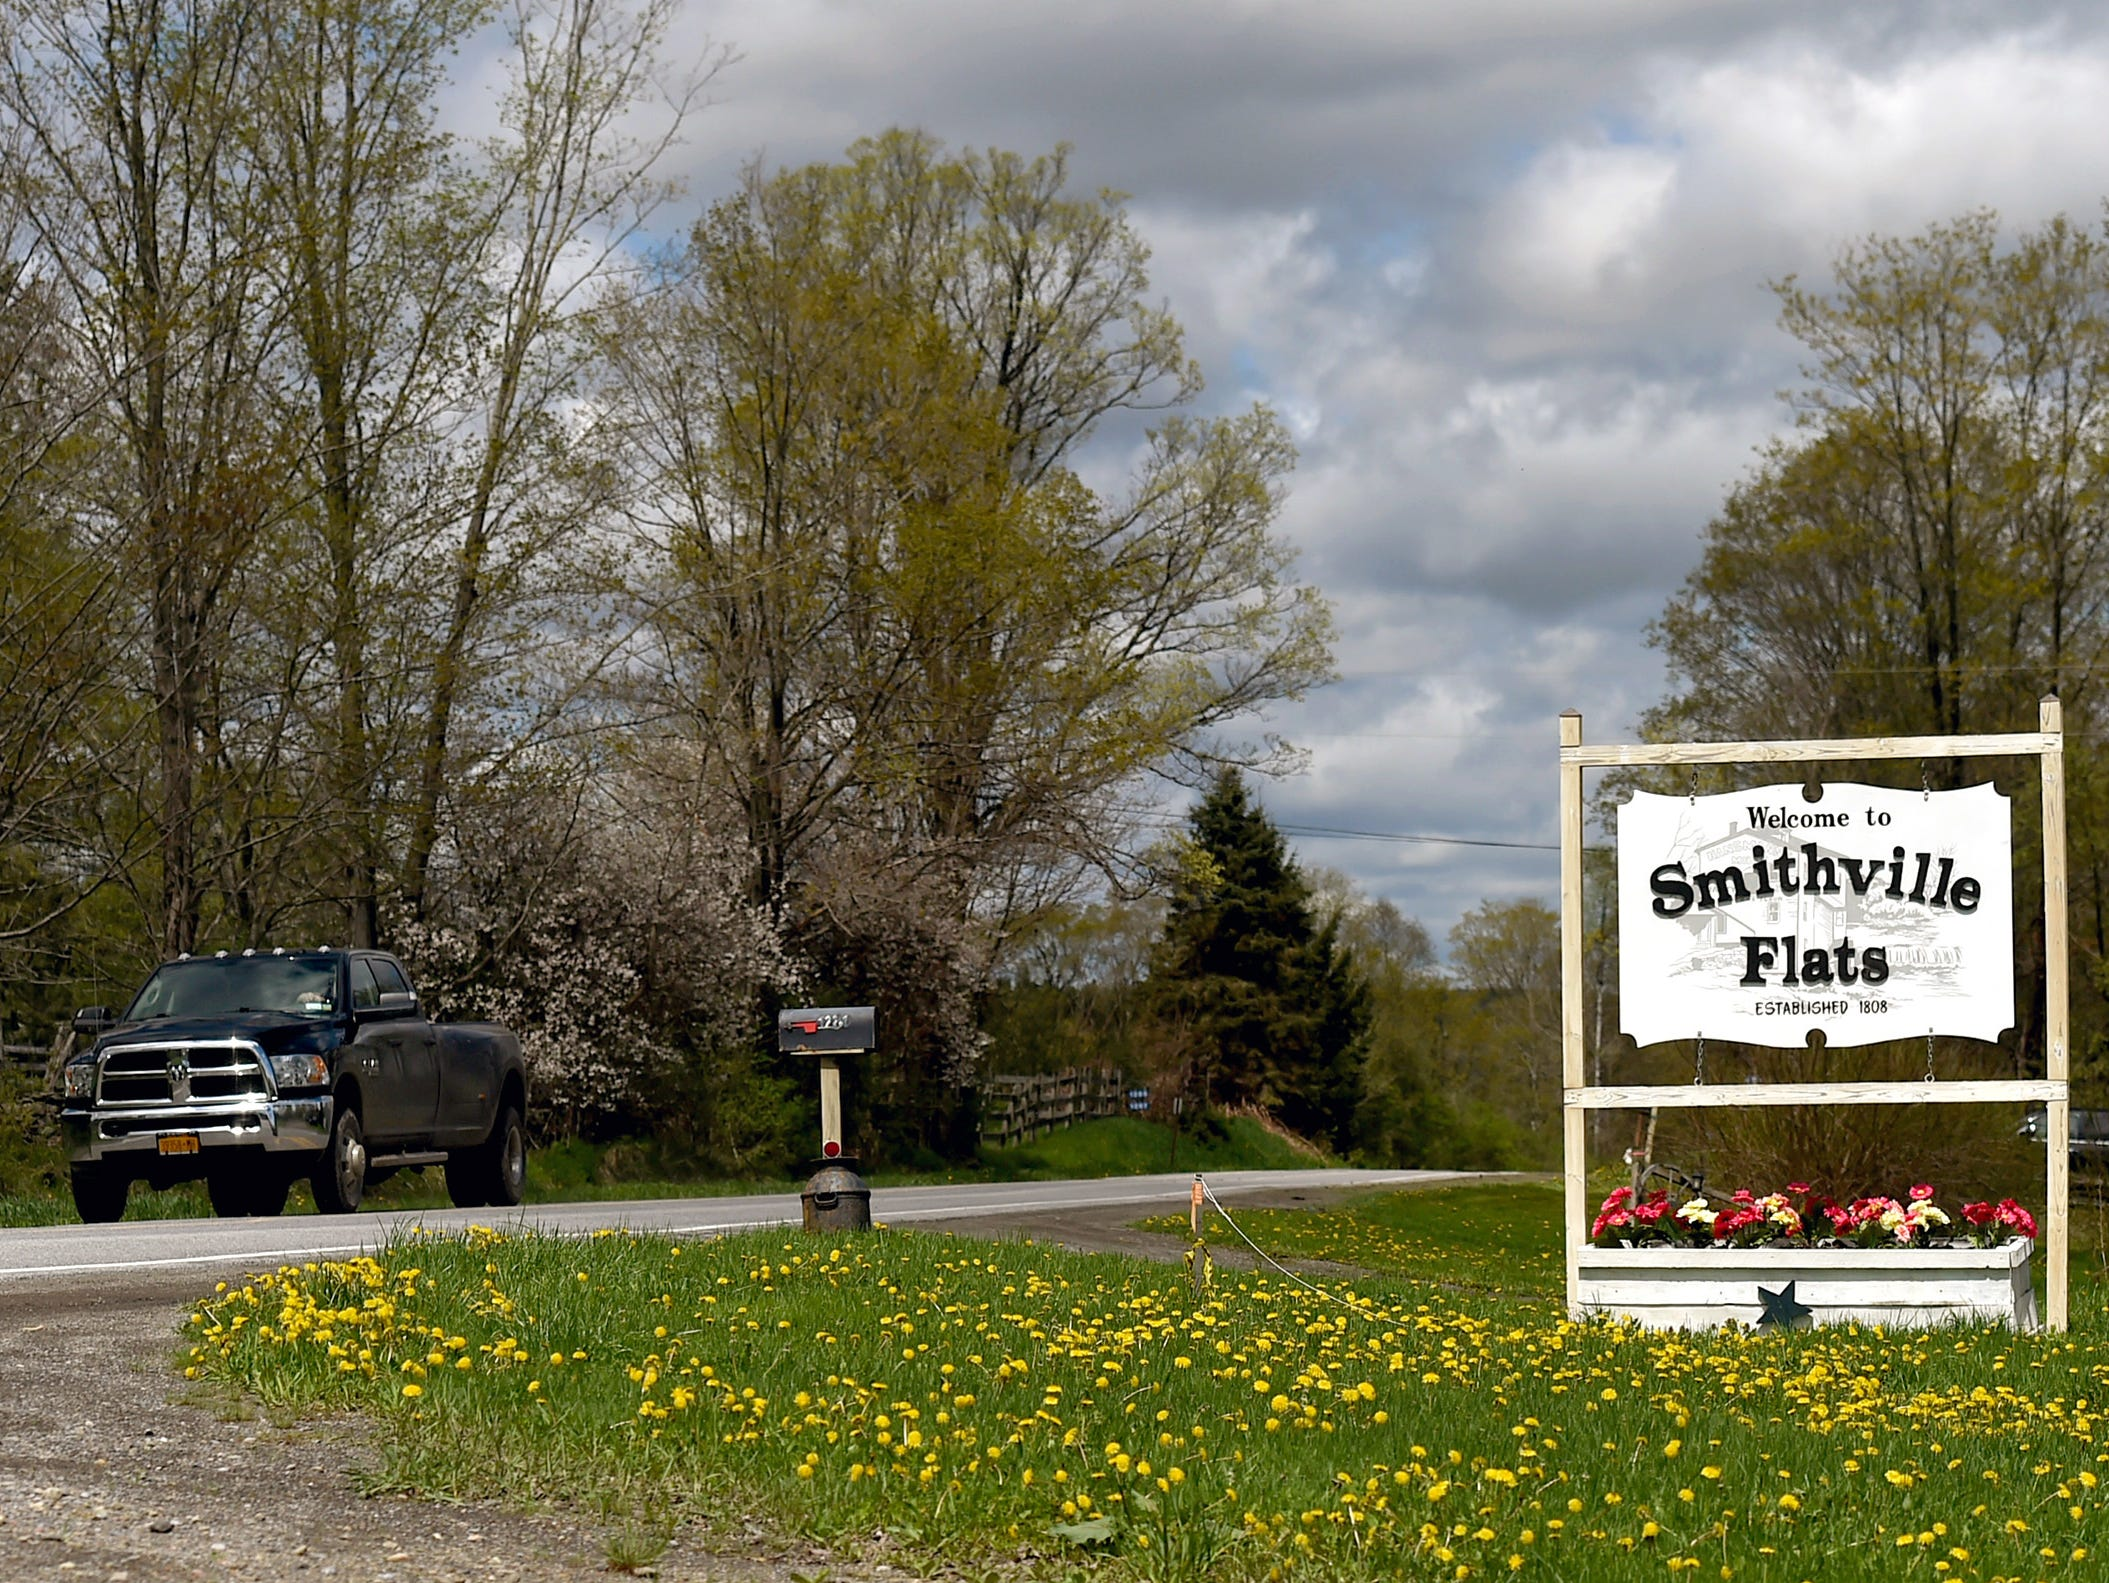 Smithville Flats in Chenango County. Amelia Wakefield was found dead inside a Smithville Flats home on Friday, May 3.